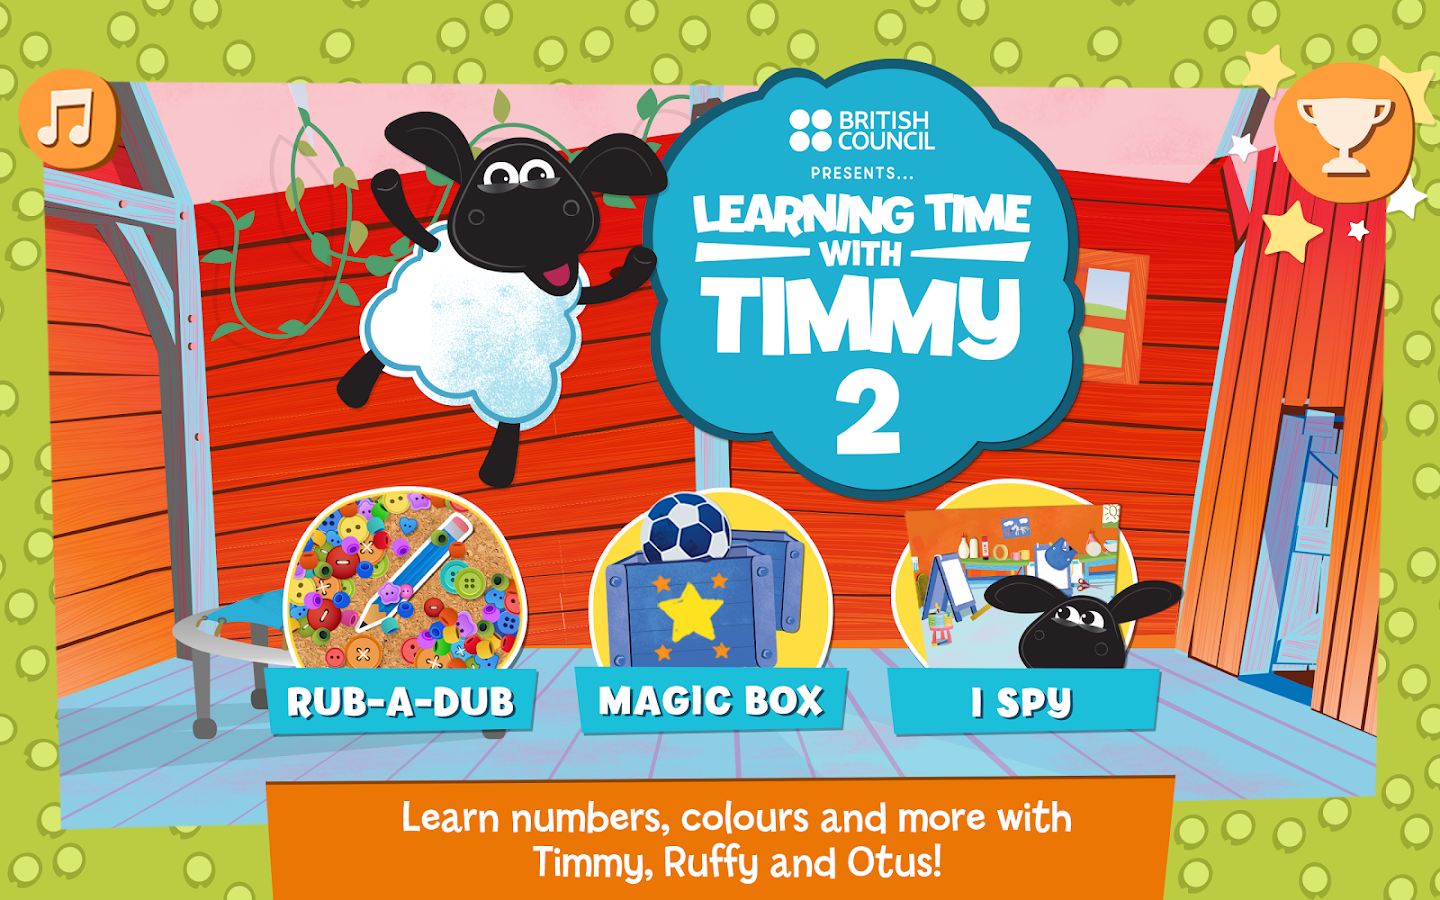 Learning Time With Timmy 2 Screenshot 5